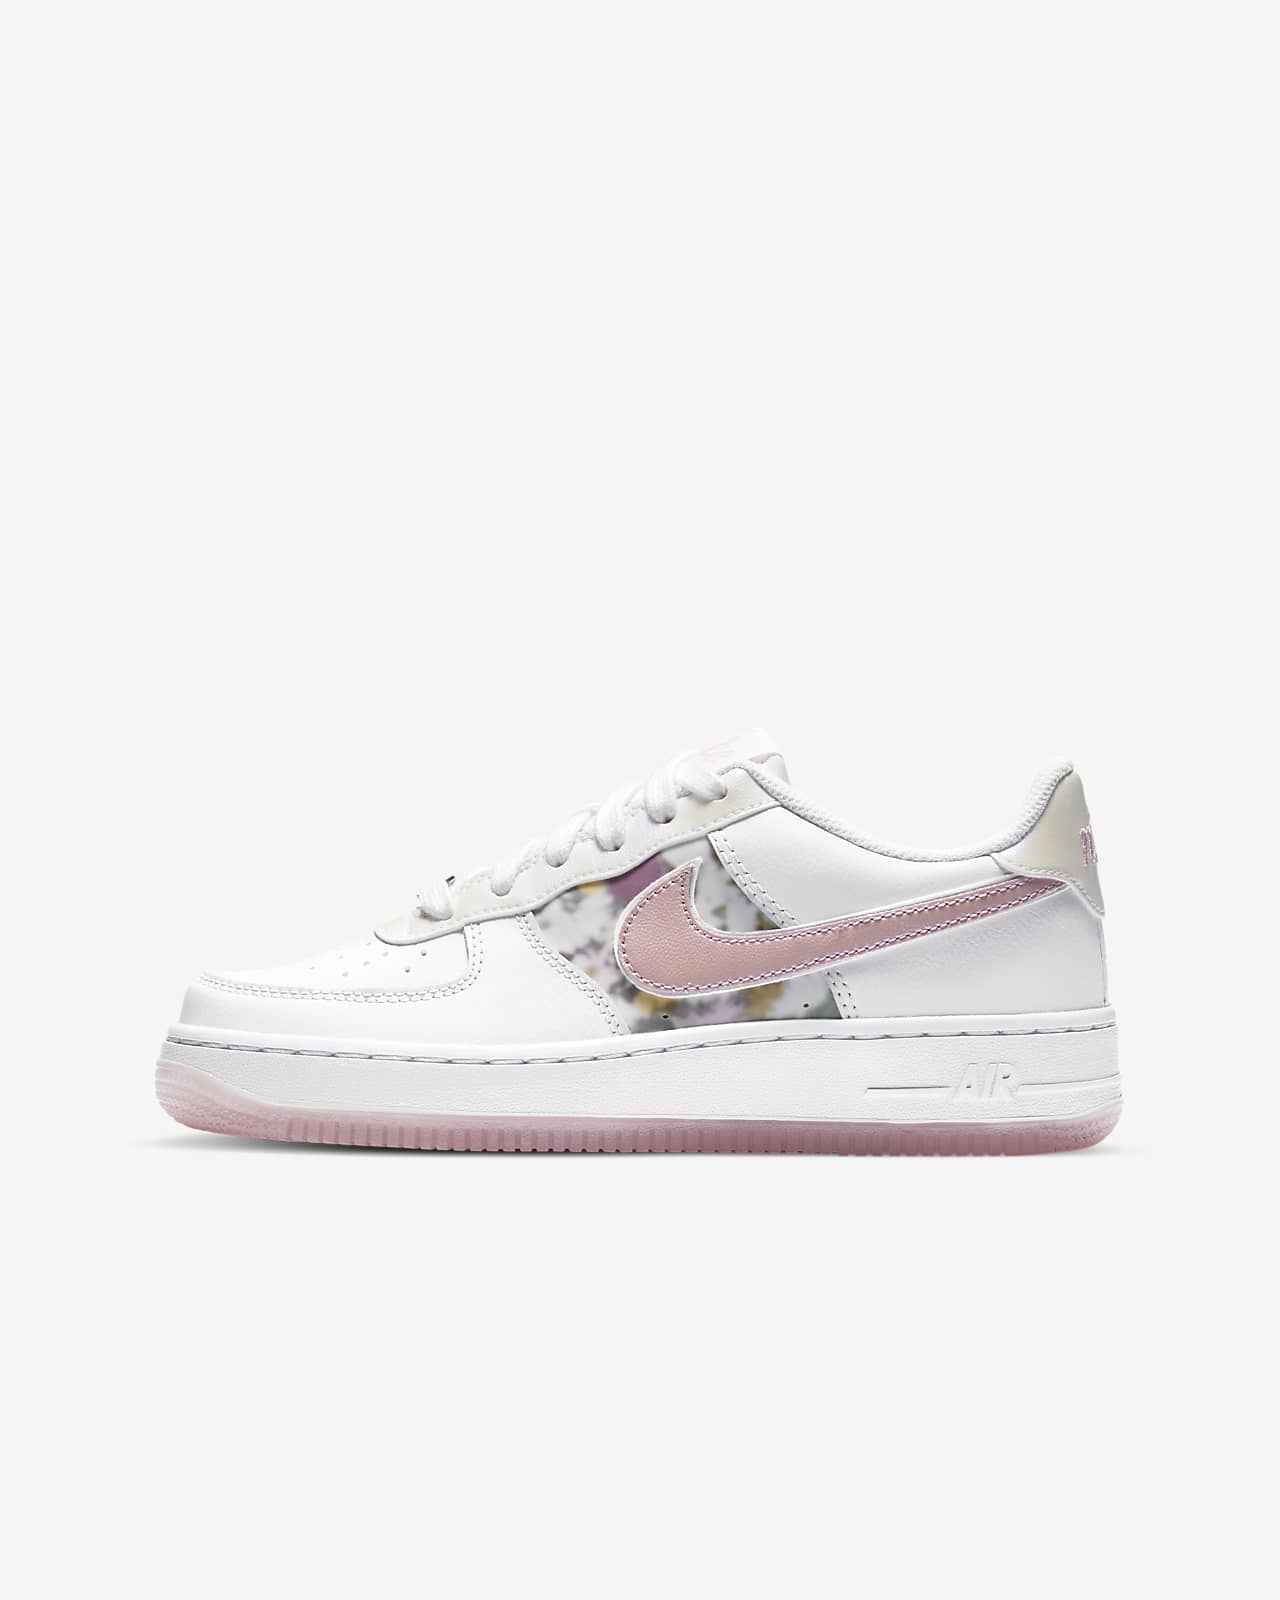 chaussure nike enfant fille 30